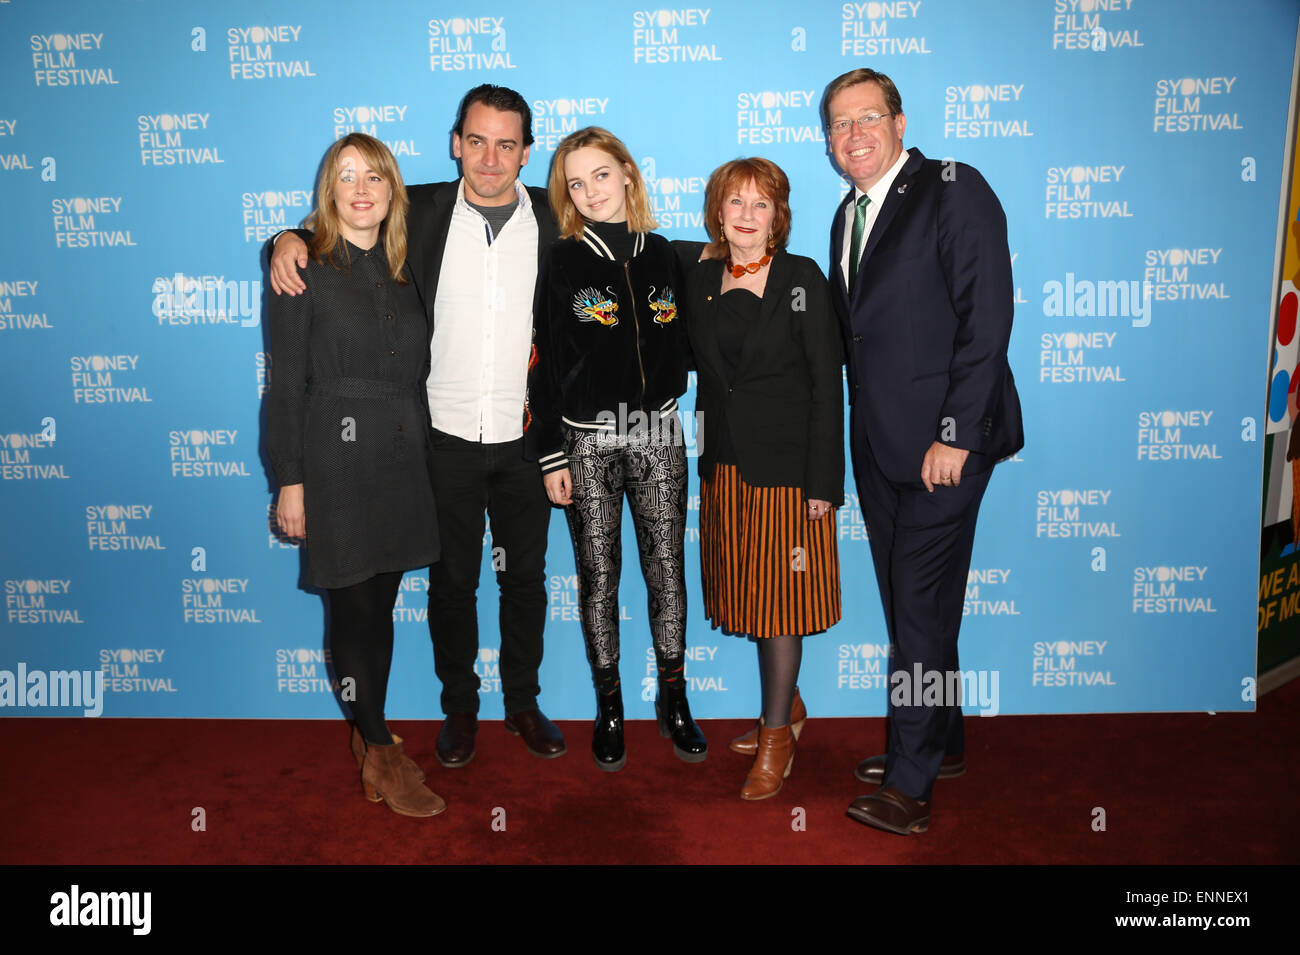 6 May 2015. L-R from the film 'The Daughter', Nicole O'Donohue, Ewen Leslie, Odessa Young, Jan Chapman - Stock Image